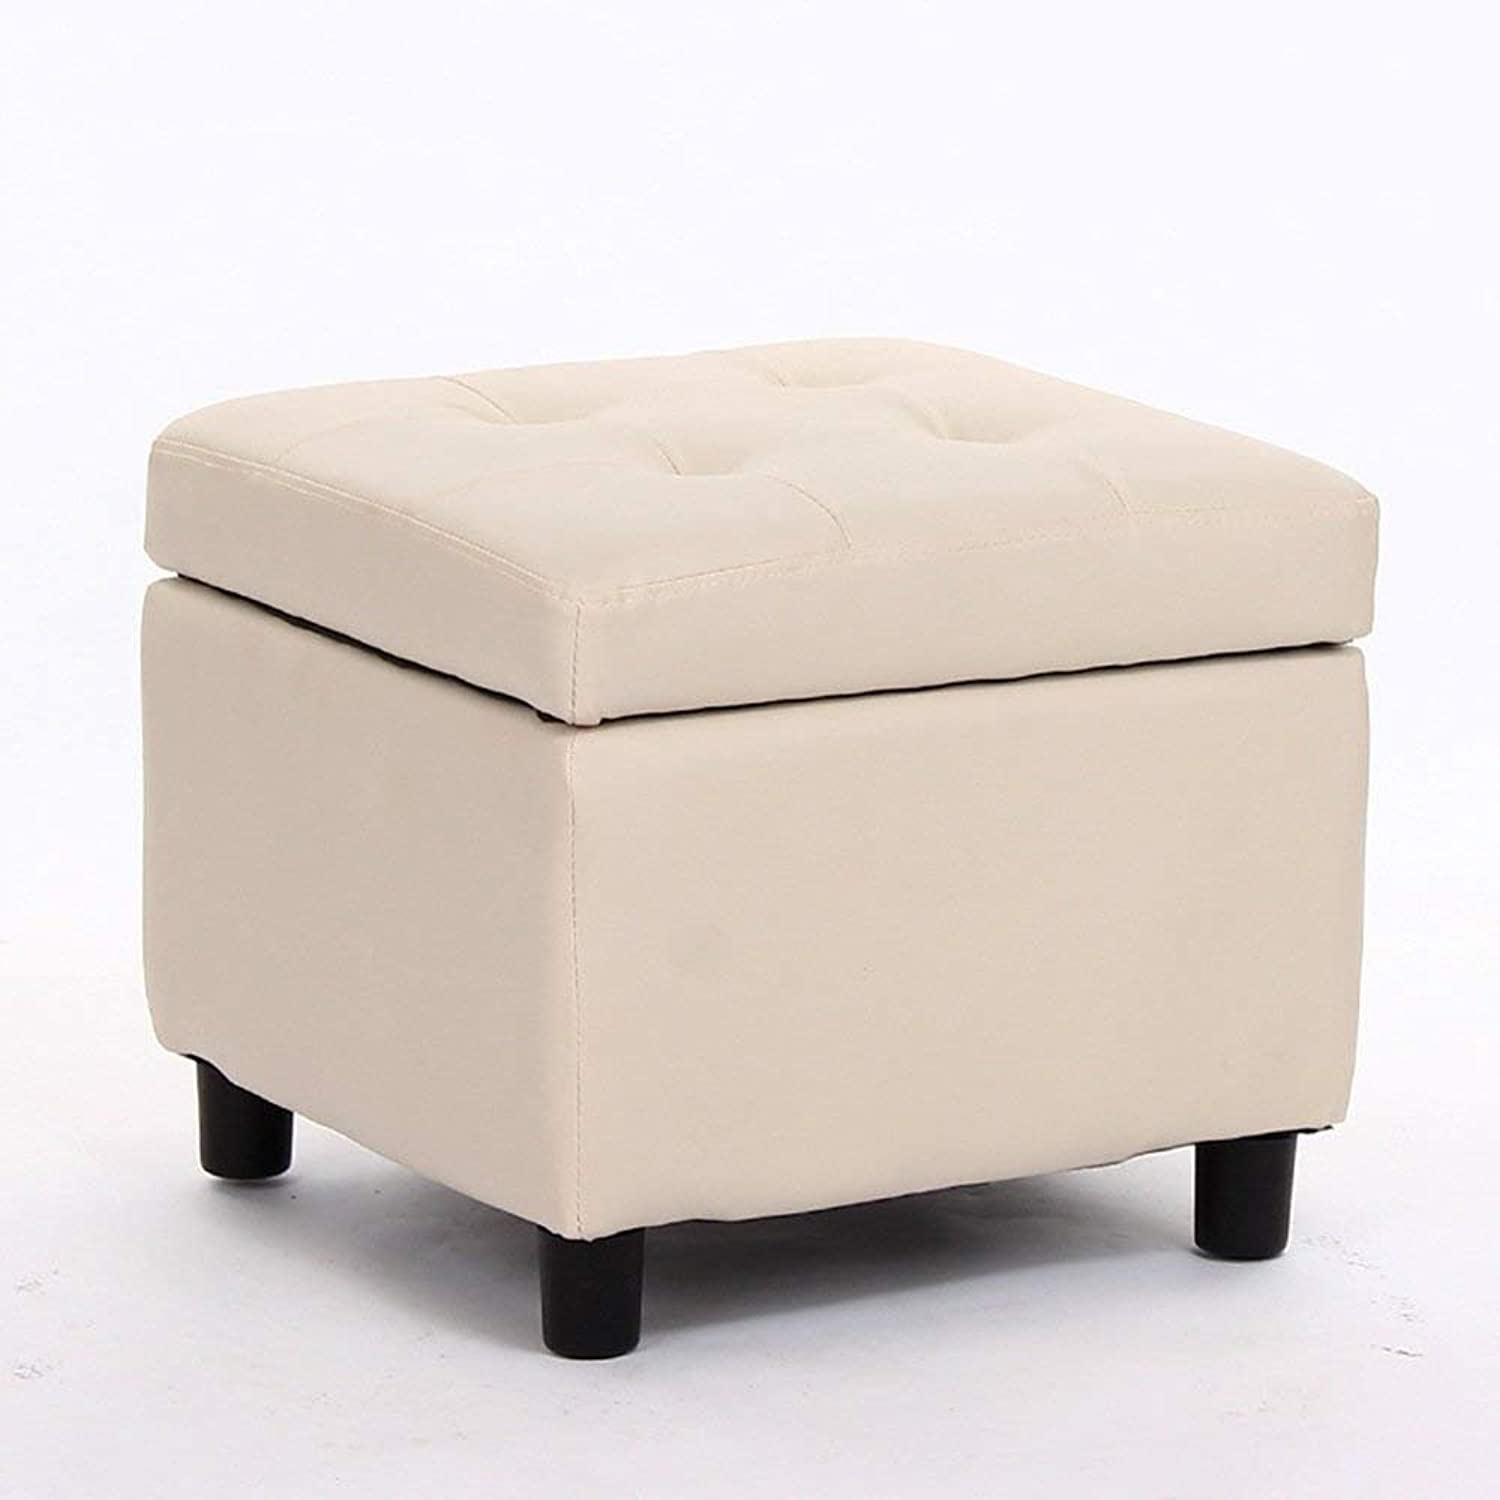 CWJ European Style for The shoes Stool Storage Stool Bed Stool Storage Stool Sofa Stool (color Optional)